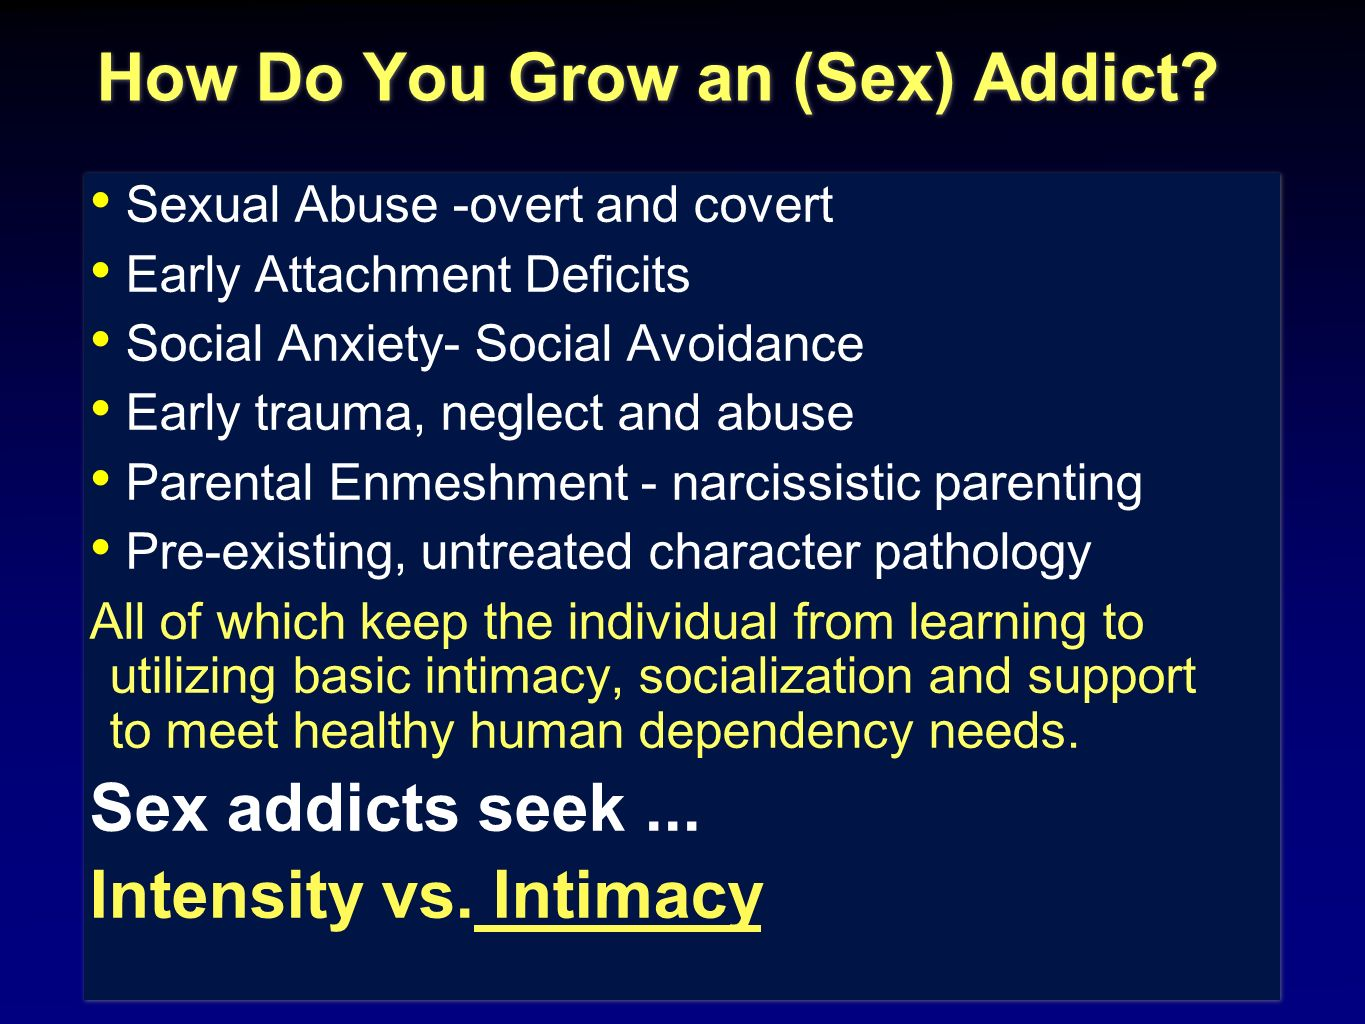 How Do You Grow an (Sex) Addict